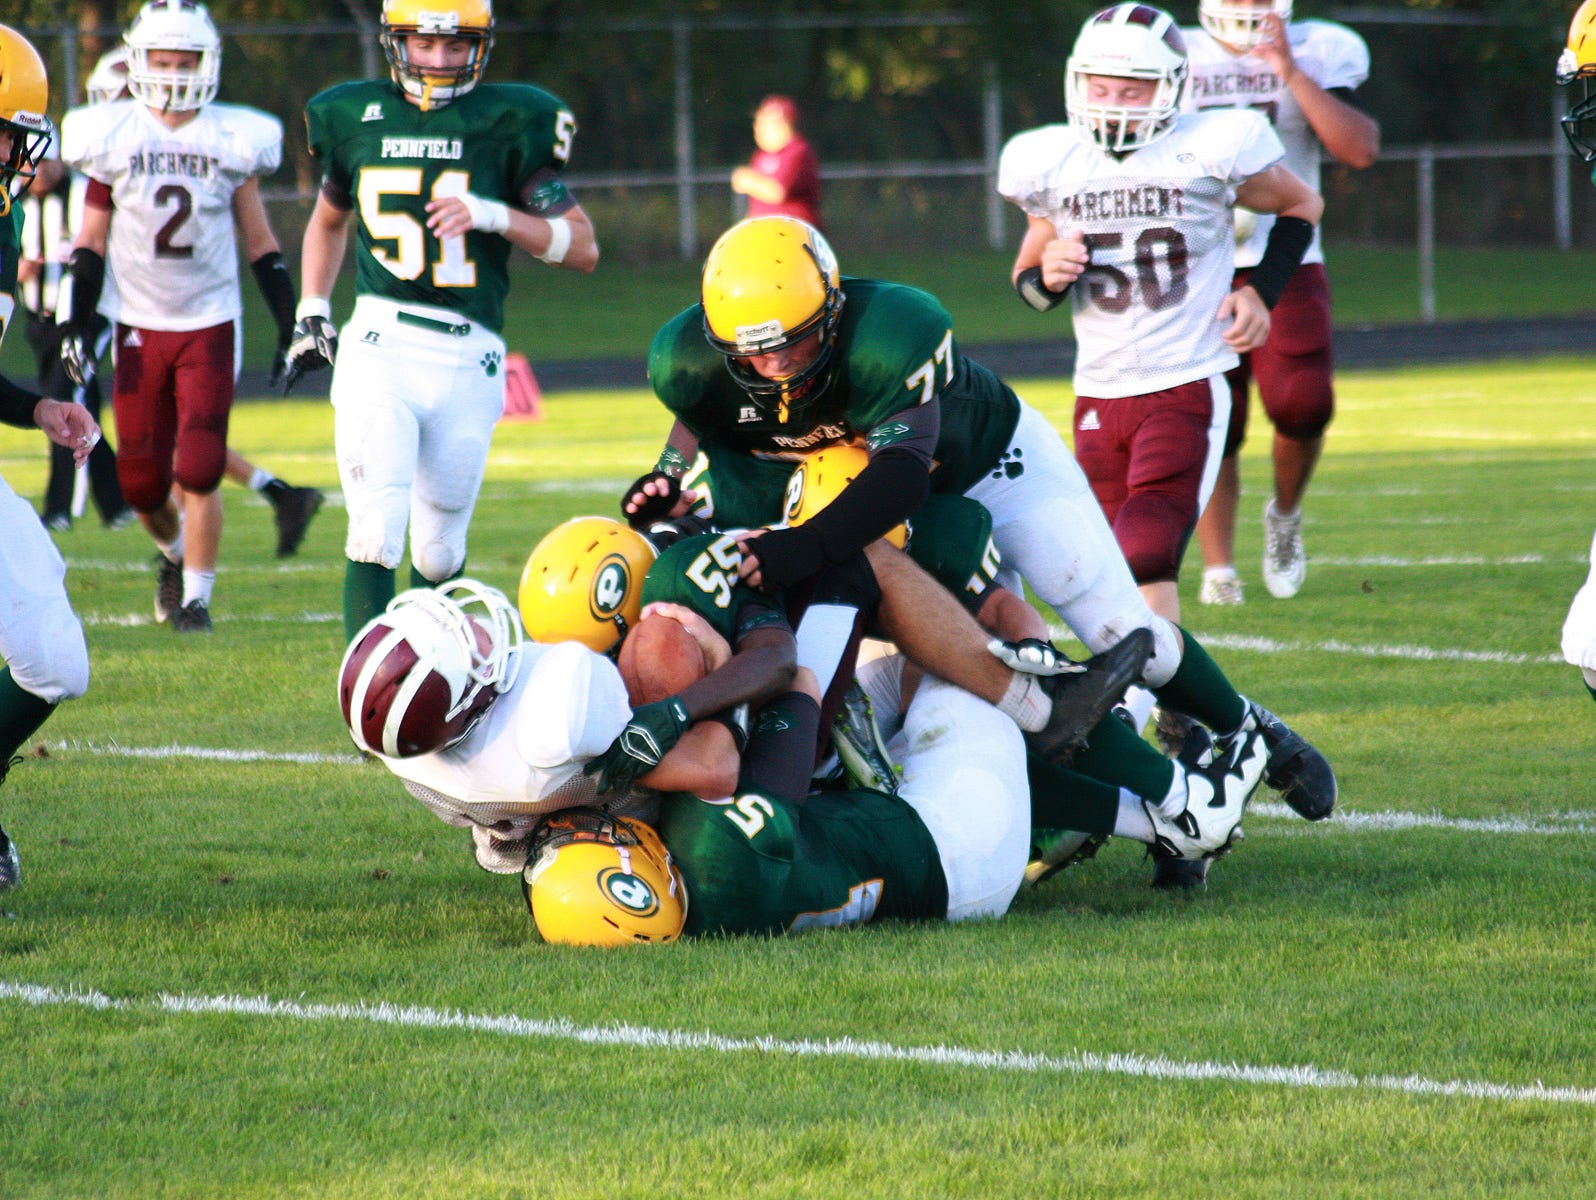 Garrett Stutz of Parchment gets tackled Thursday night against Pennfield